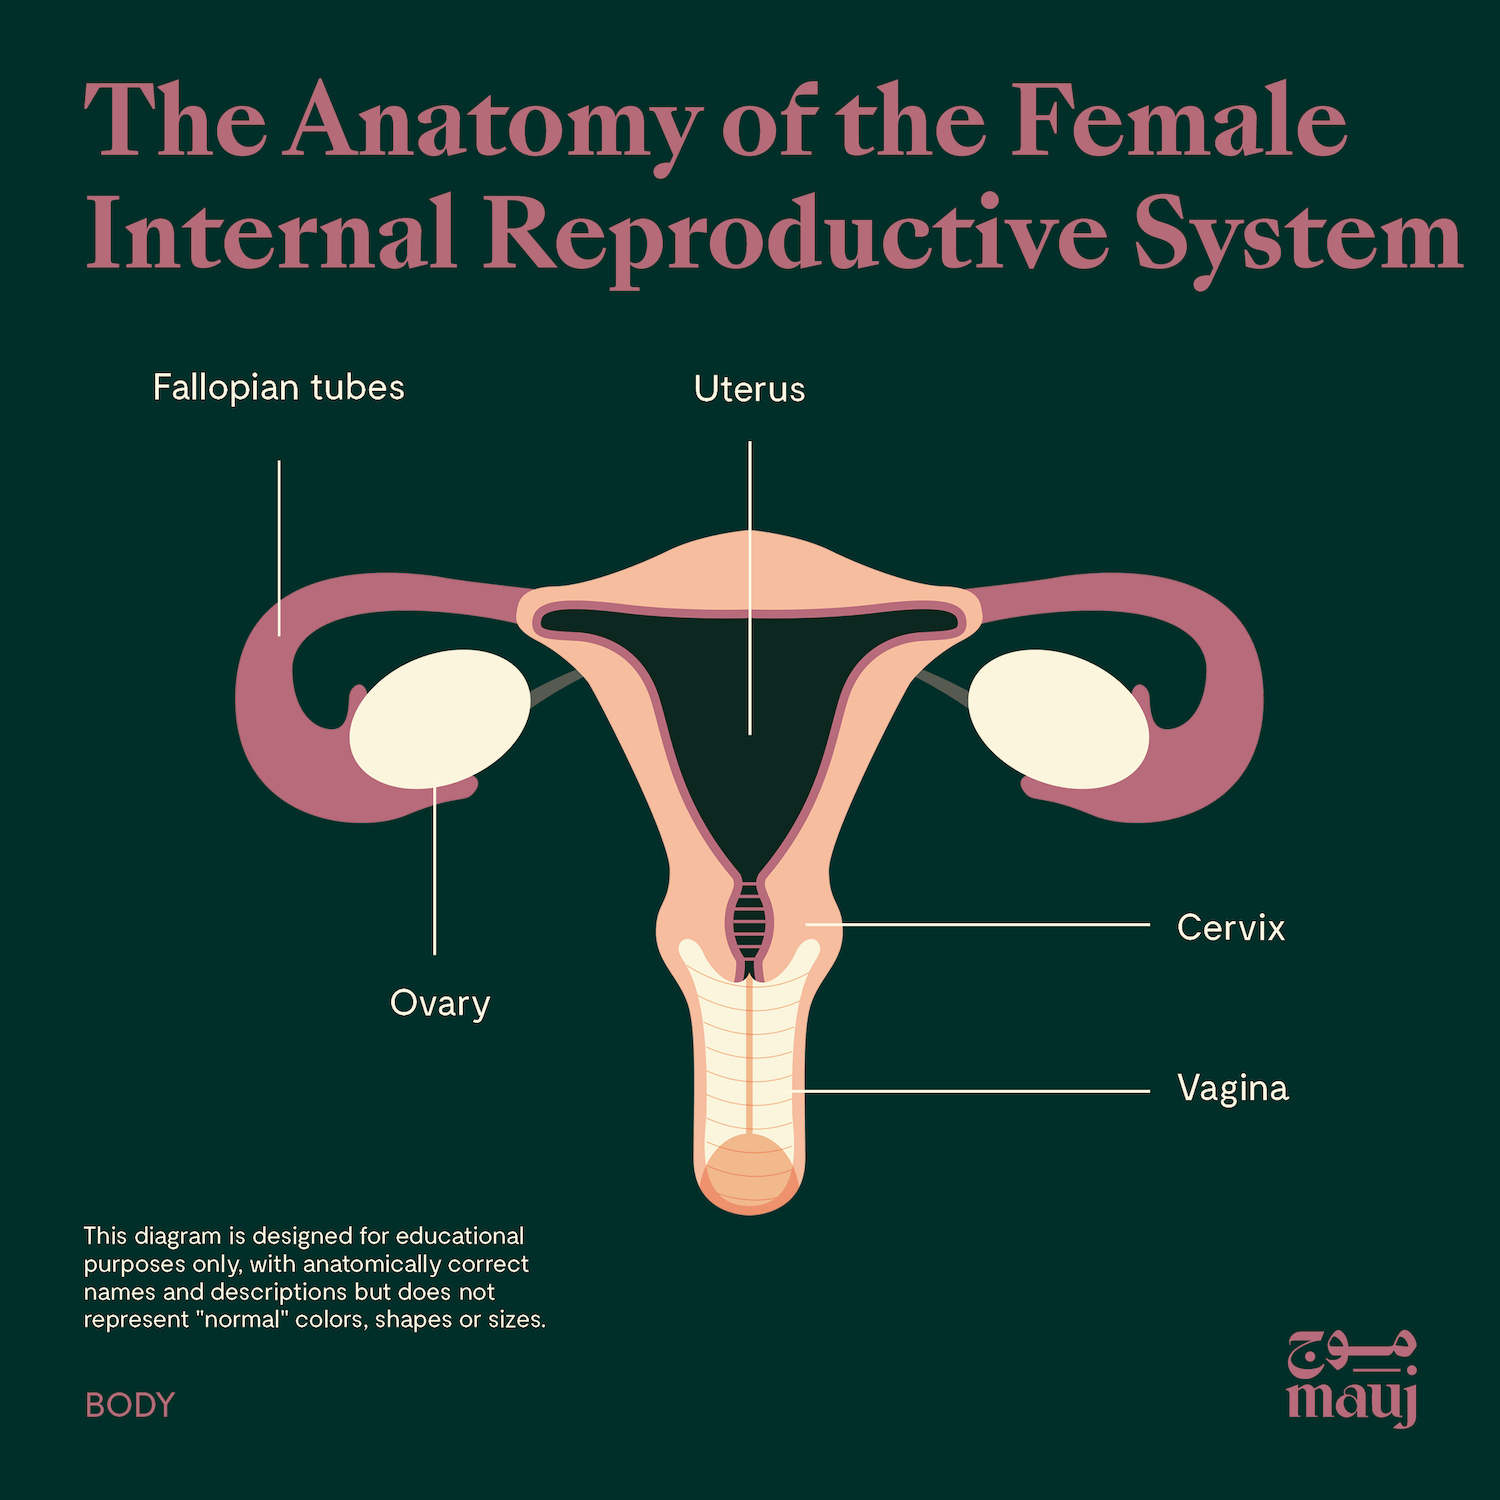 The anatomy of the female internal reproductive system.